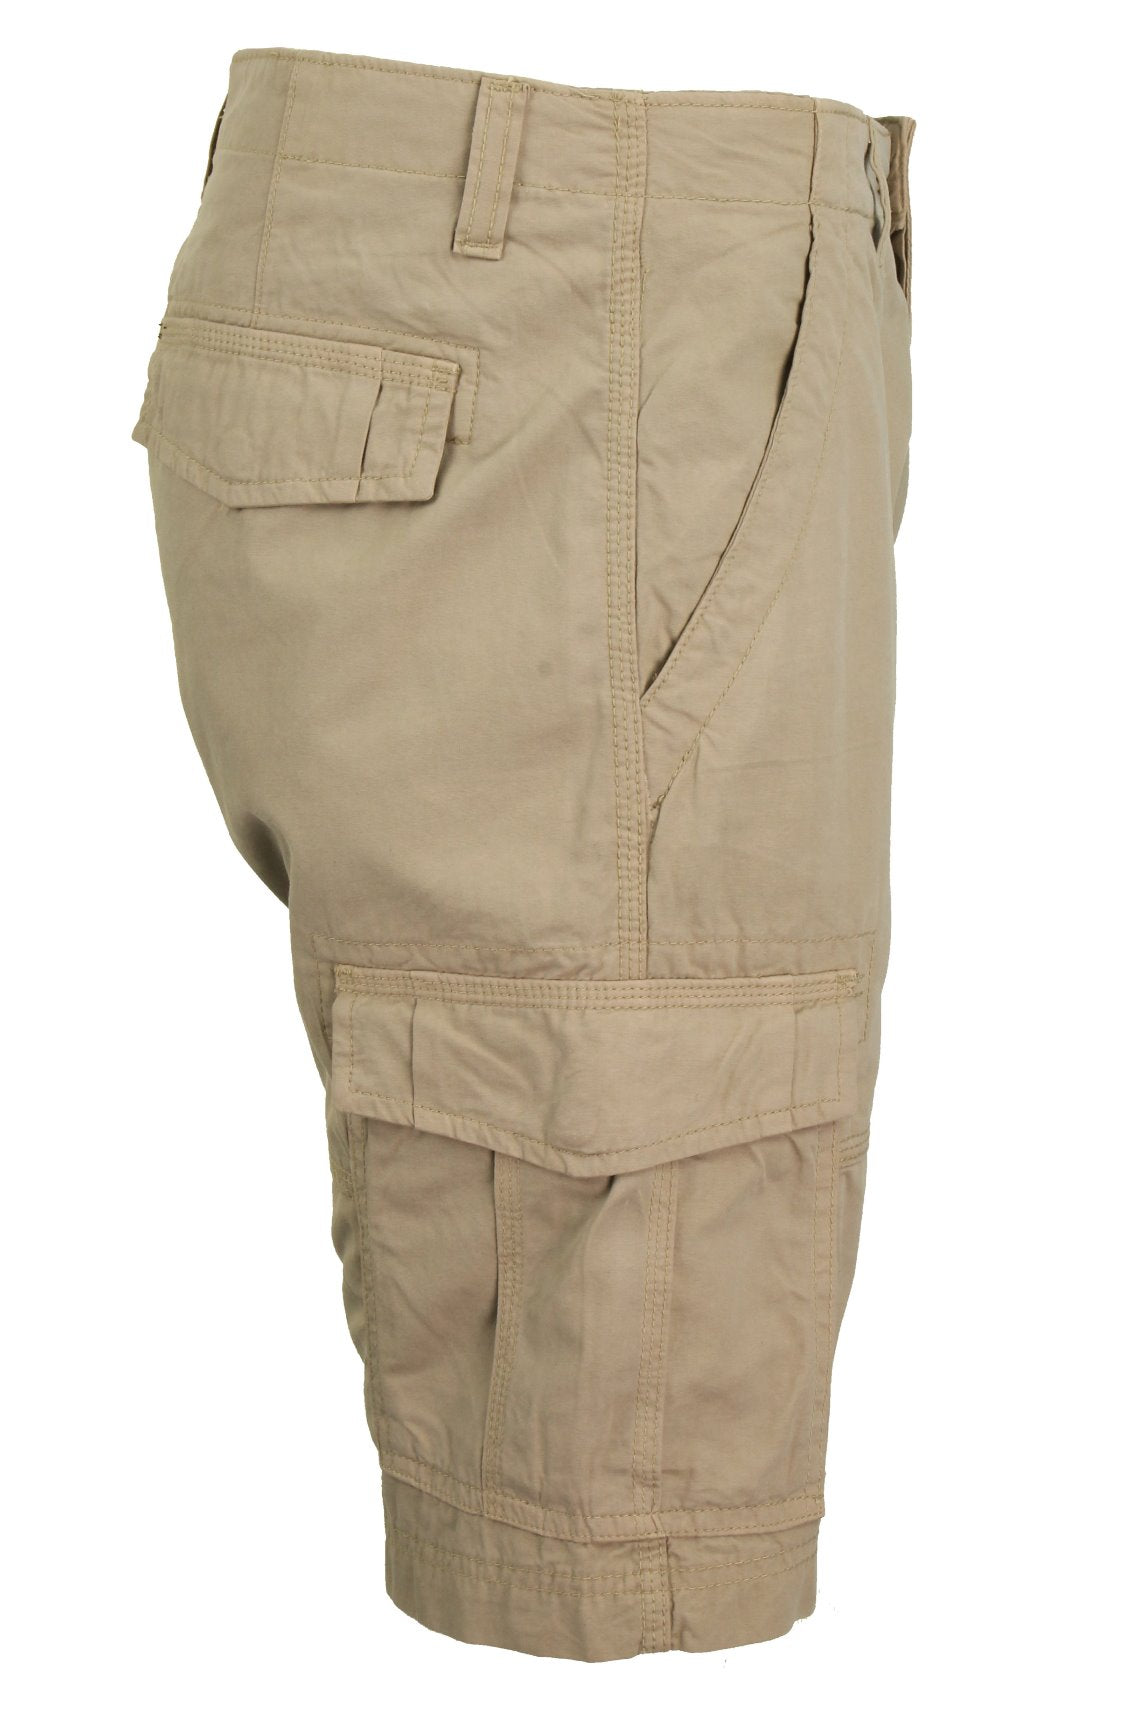 Mens Canvas Cargo Shorts by Xact-2